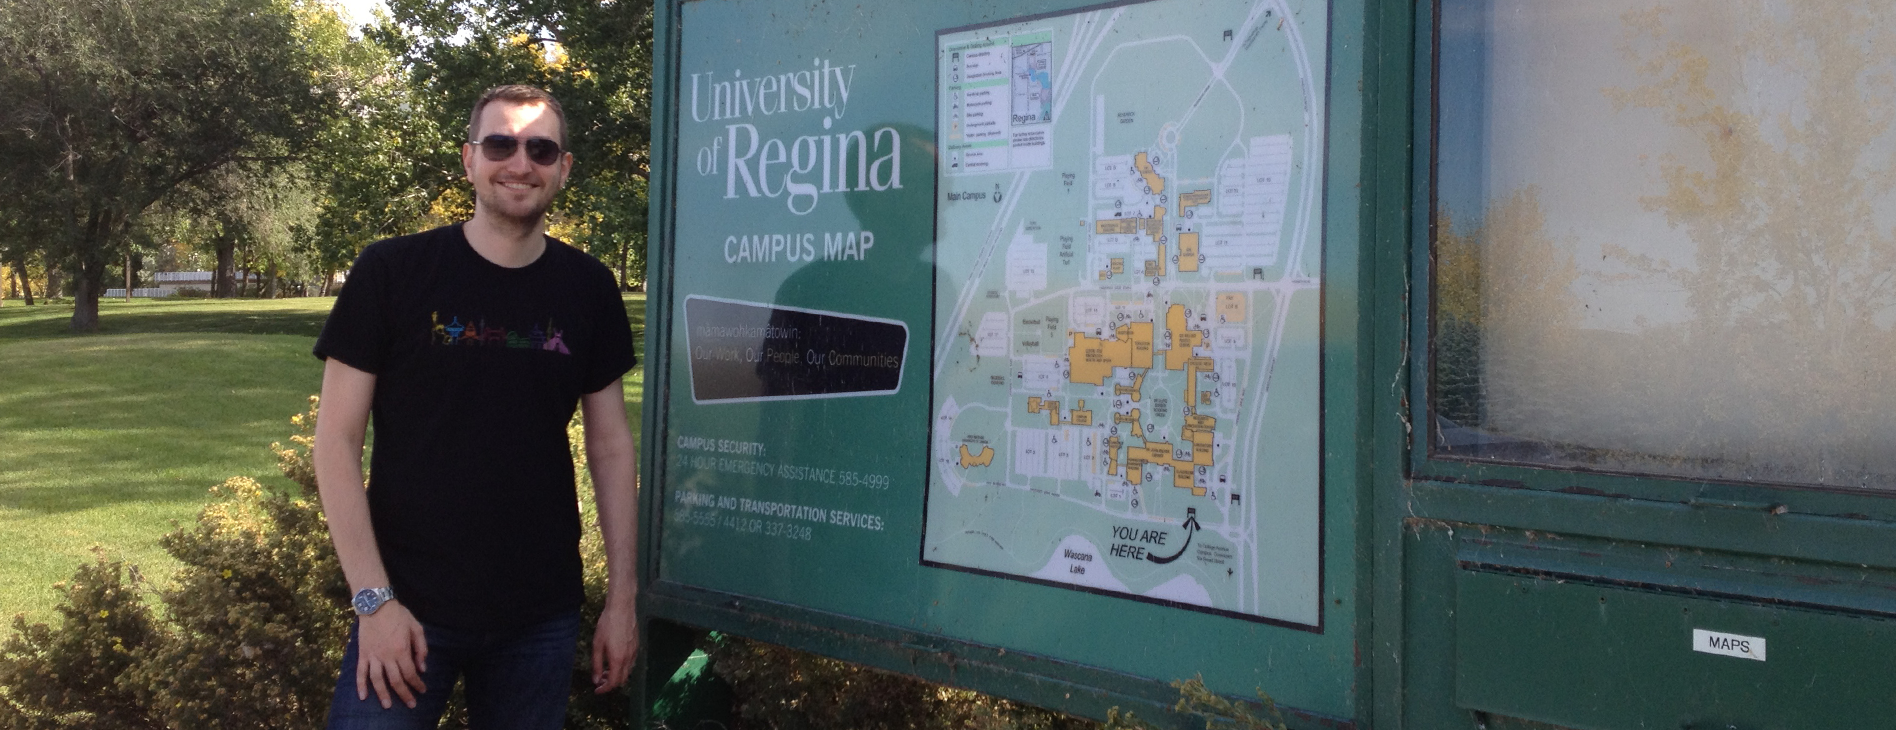 Campus Map University of Regina